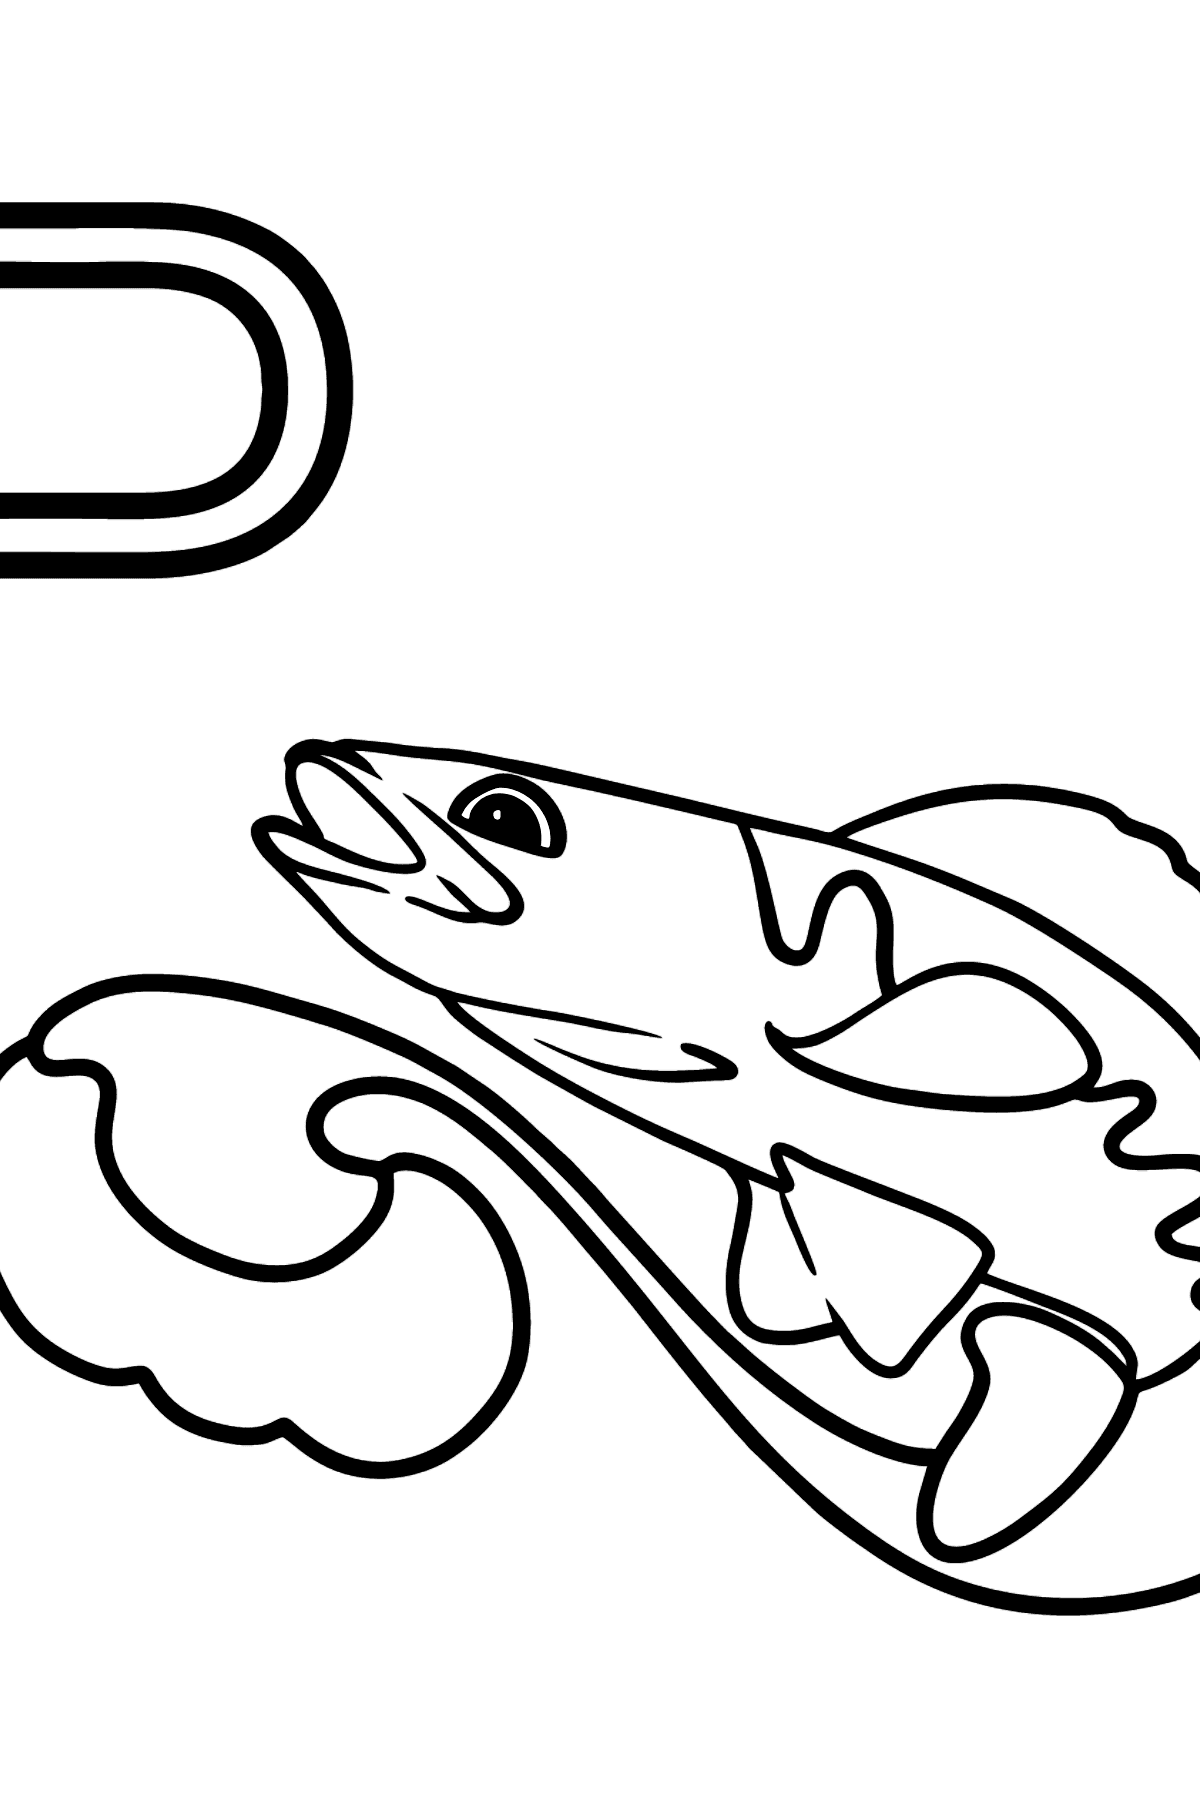 Spanish Letter P coloring pages - PEZ - Coloring Pages for Kids